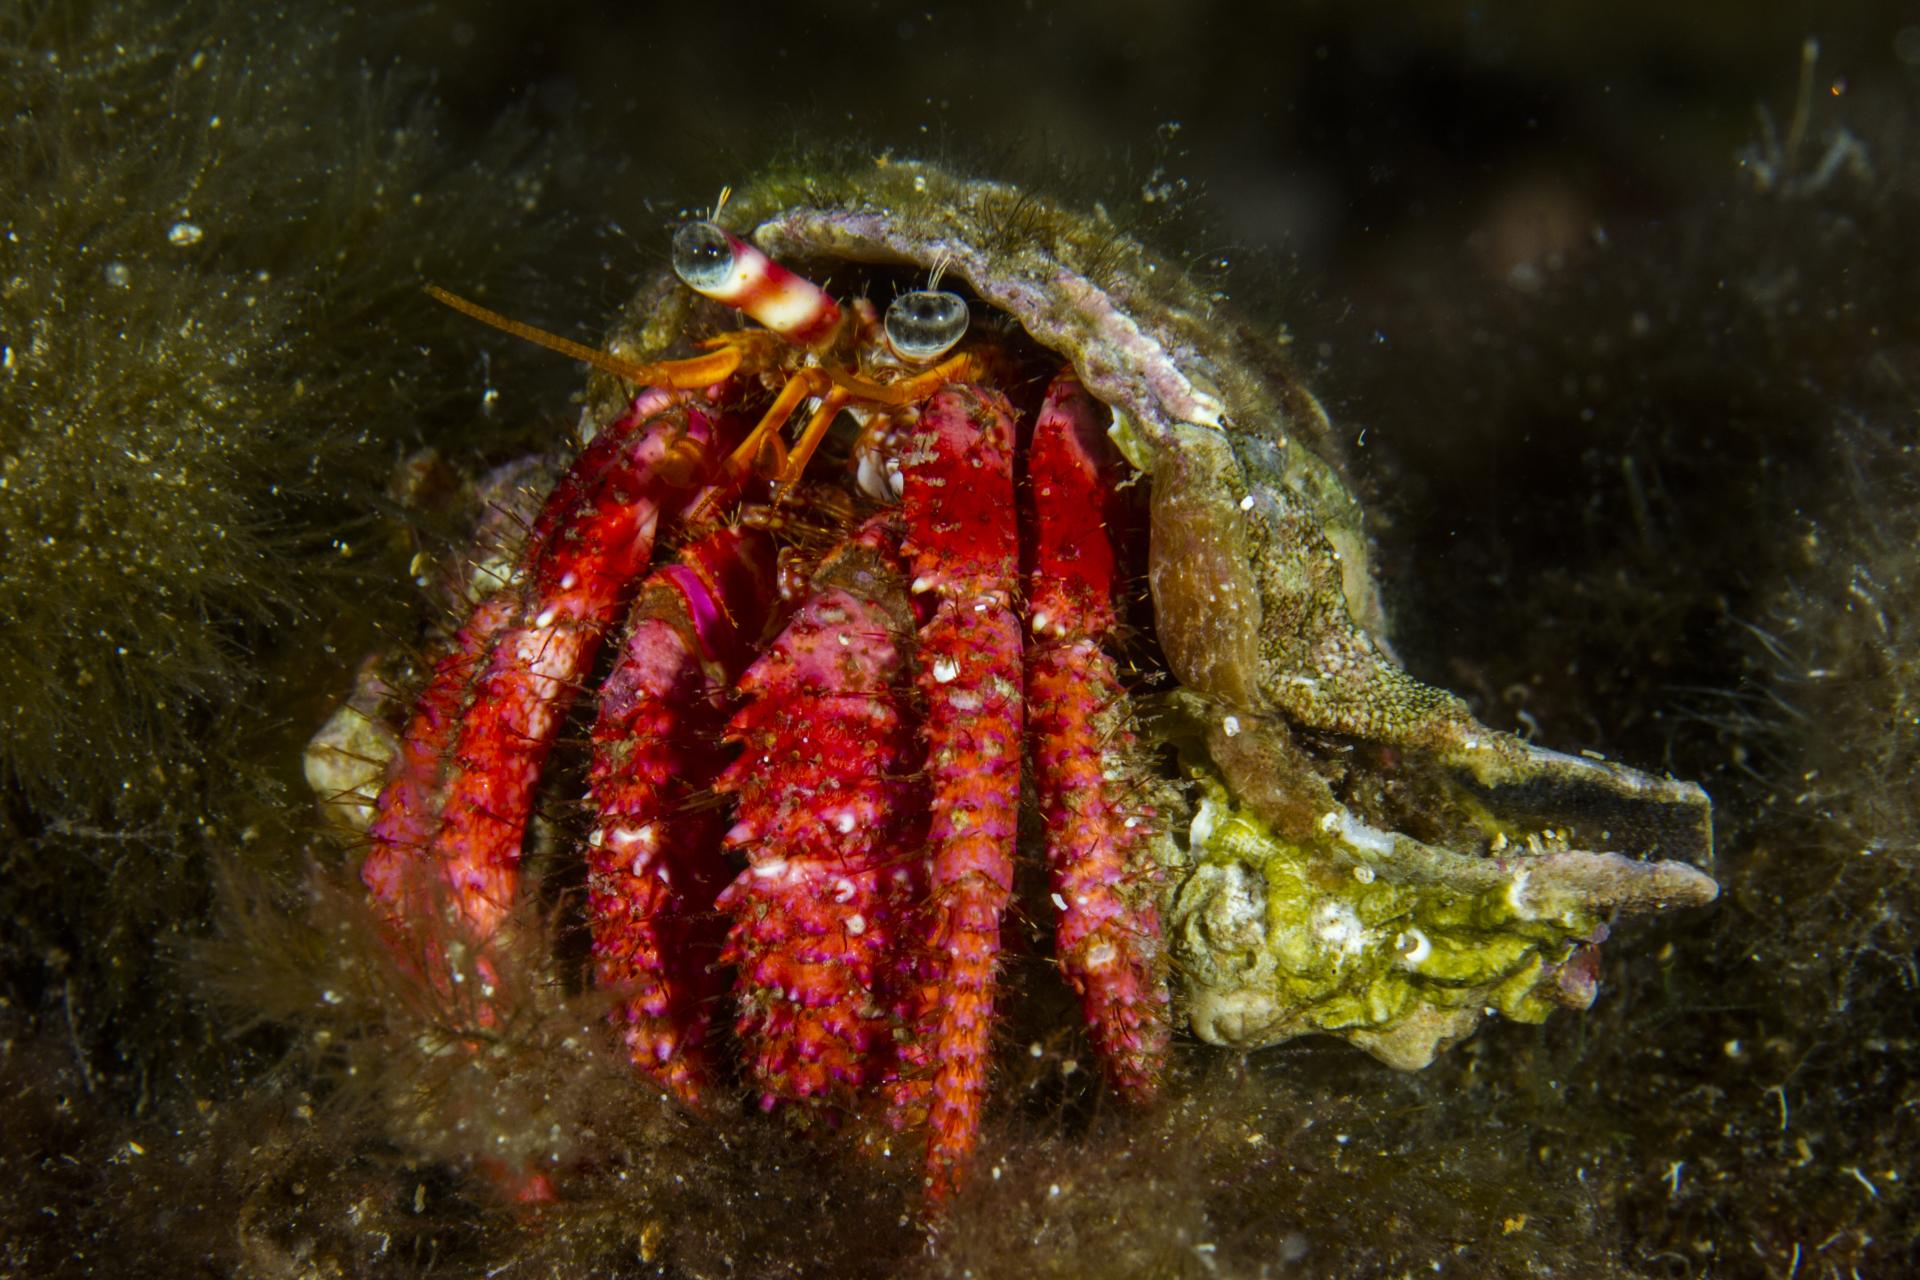 Several species of hermit crab can be found in Balearic waters.